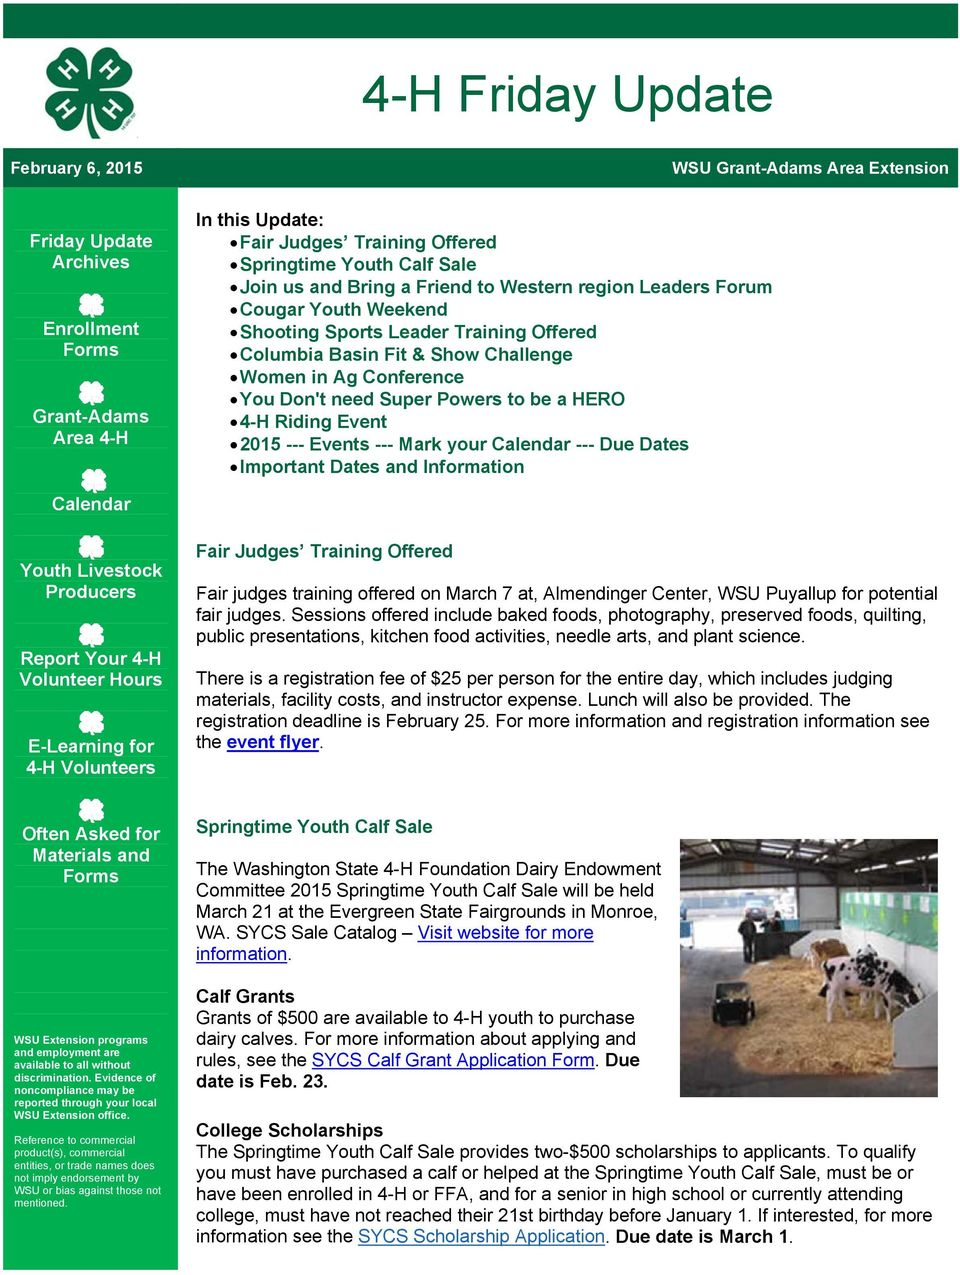 Powers to be a HERO 4-H Riding Event 2015 --- Events --- Mark your Calendar --- Due Dates Important Dates and Information Calendar Youth Livestock Producers Report Your 4-H Volunteer Hours E-Learning